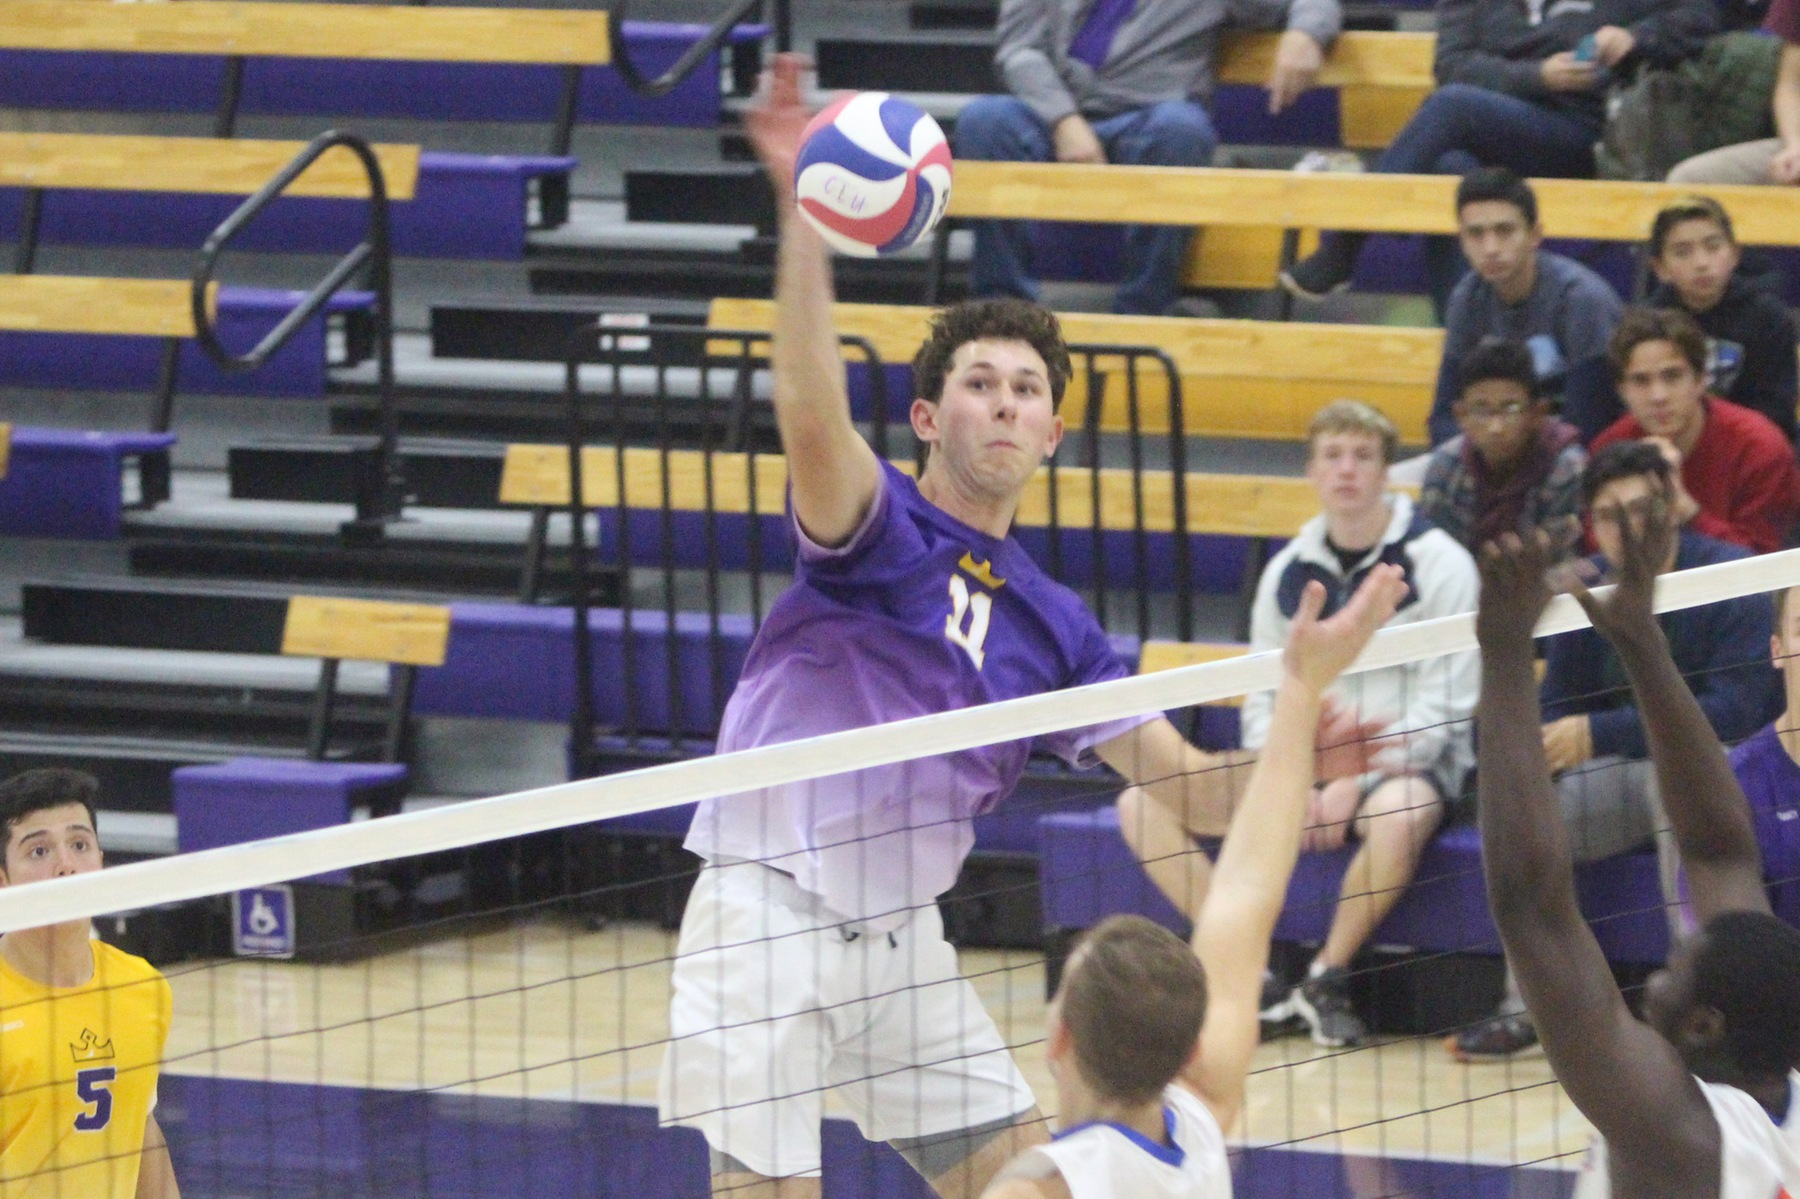 Dietrich tallied 15 kills as the Kingsmen defeated No. 4 Stevens 3-2.